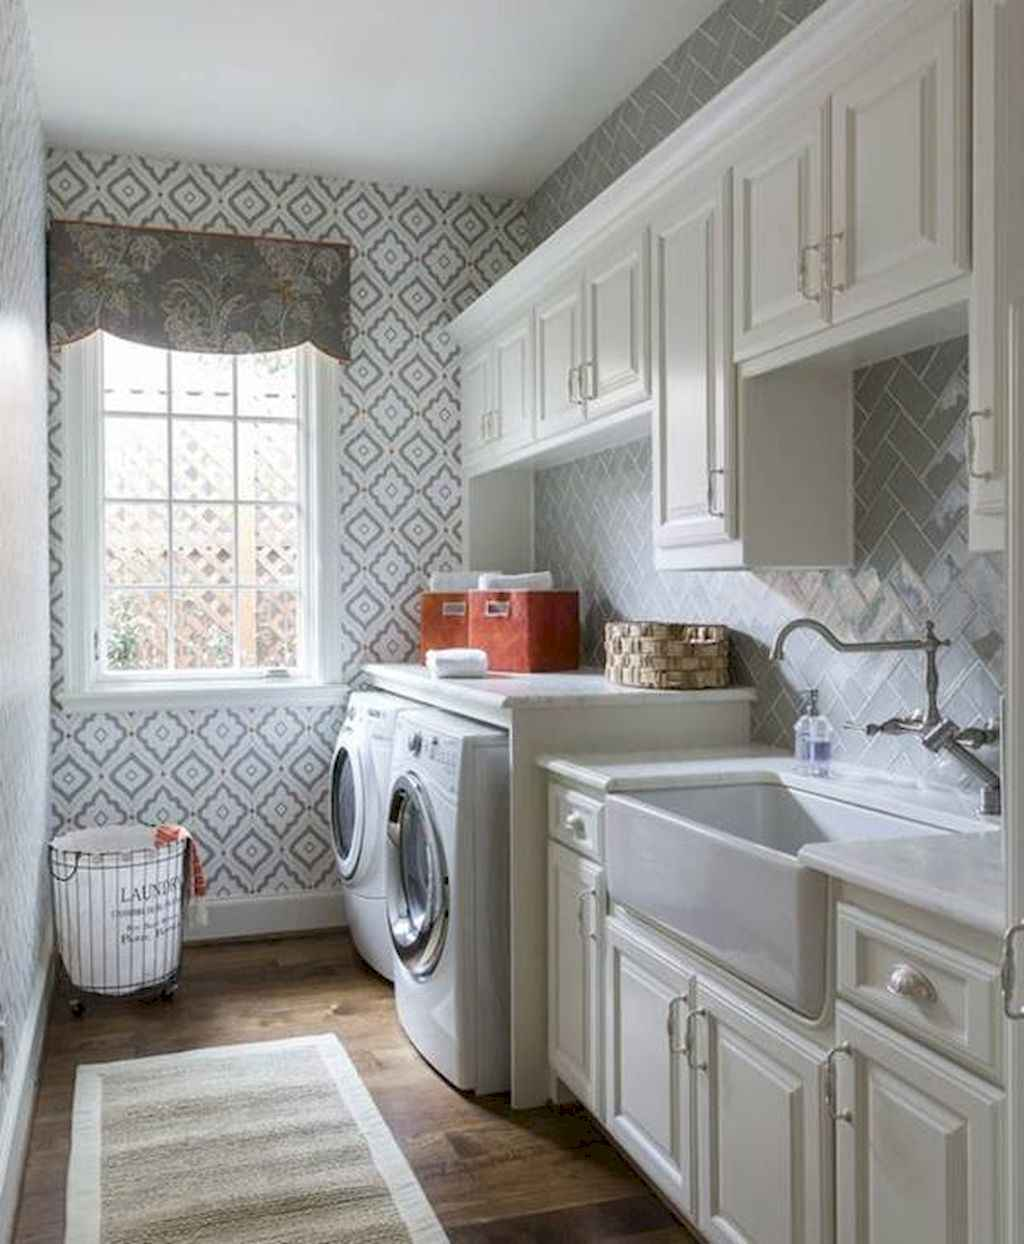 45 Rustic Farmhouse Laundry Room Design Ideas and Makeover (36)